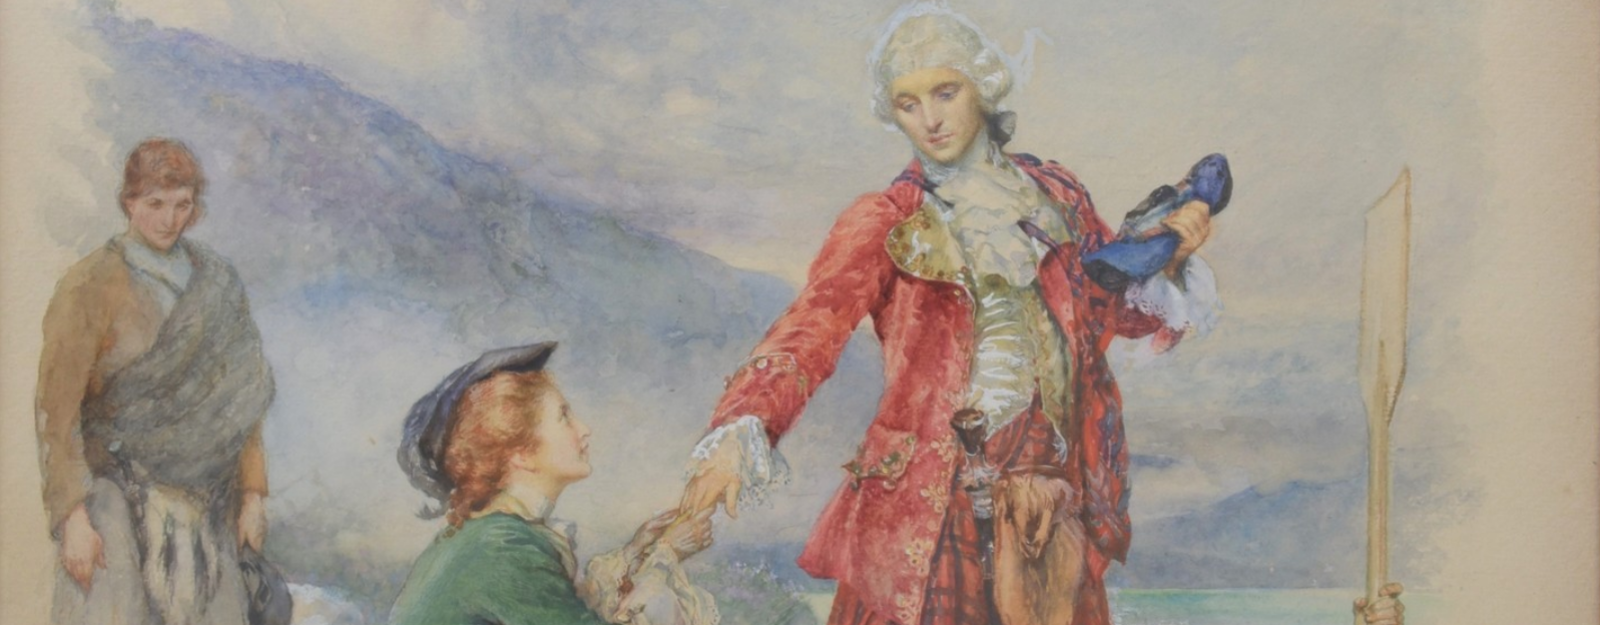 Painting of Bonnie Prince Charlie and Flora MacDonald